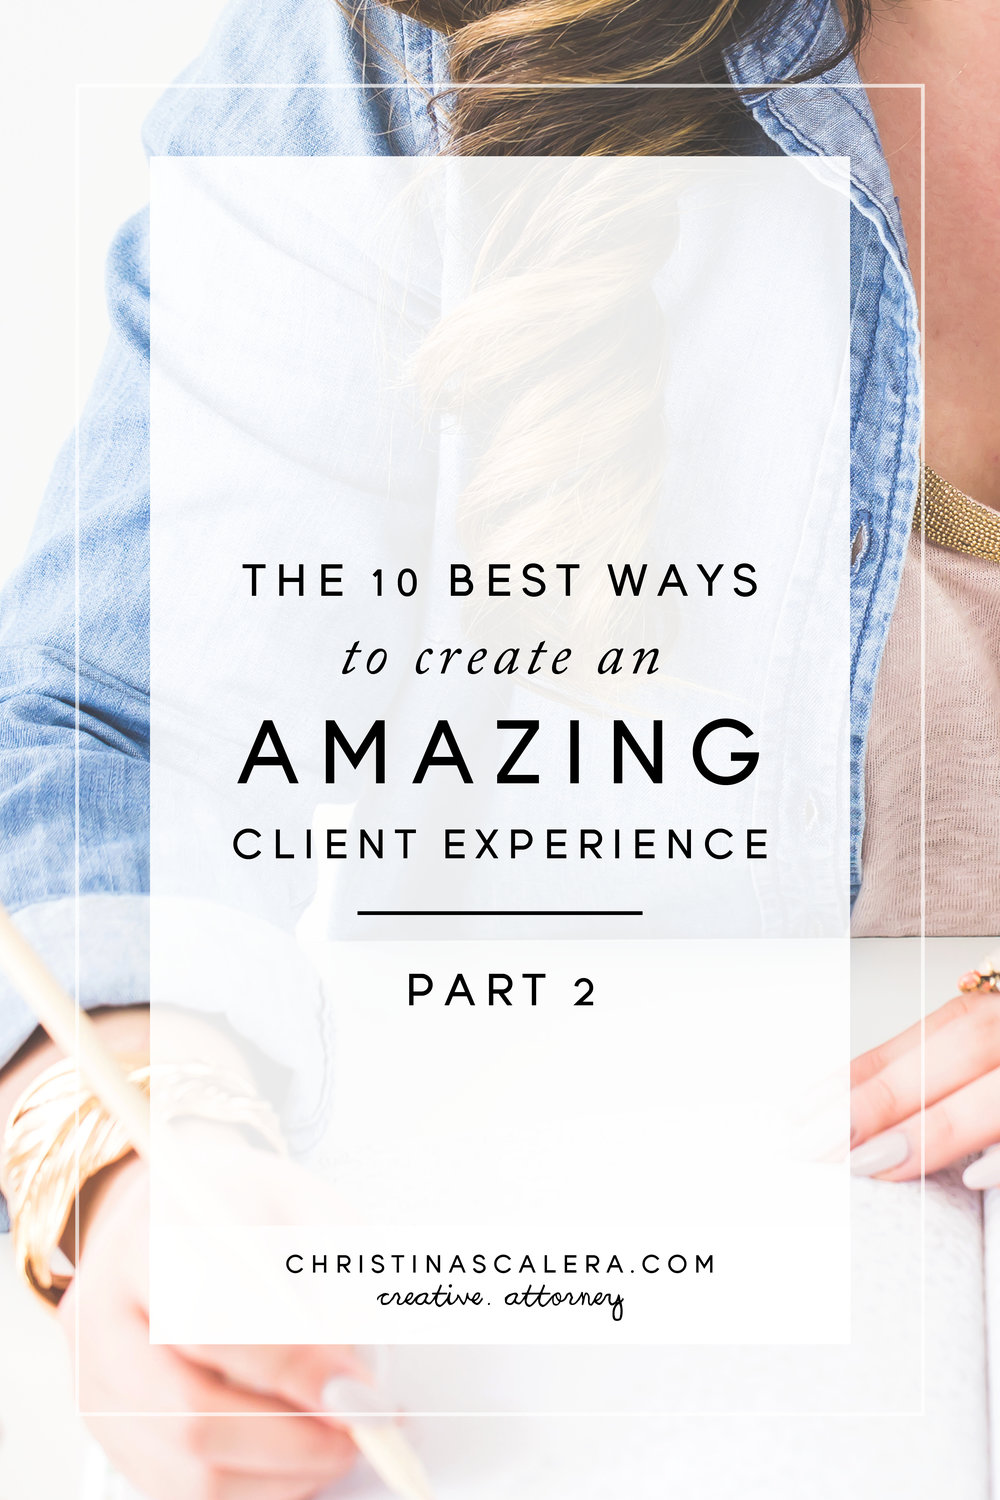 The Best Ways to Create an Amazing Client Experience, Part 2!